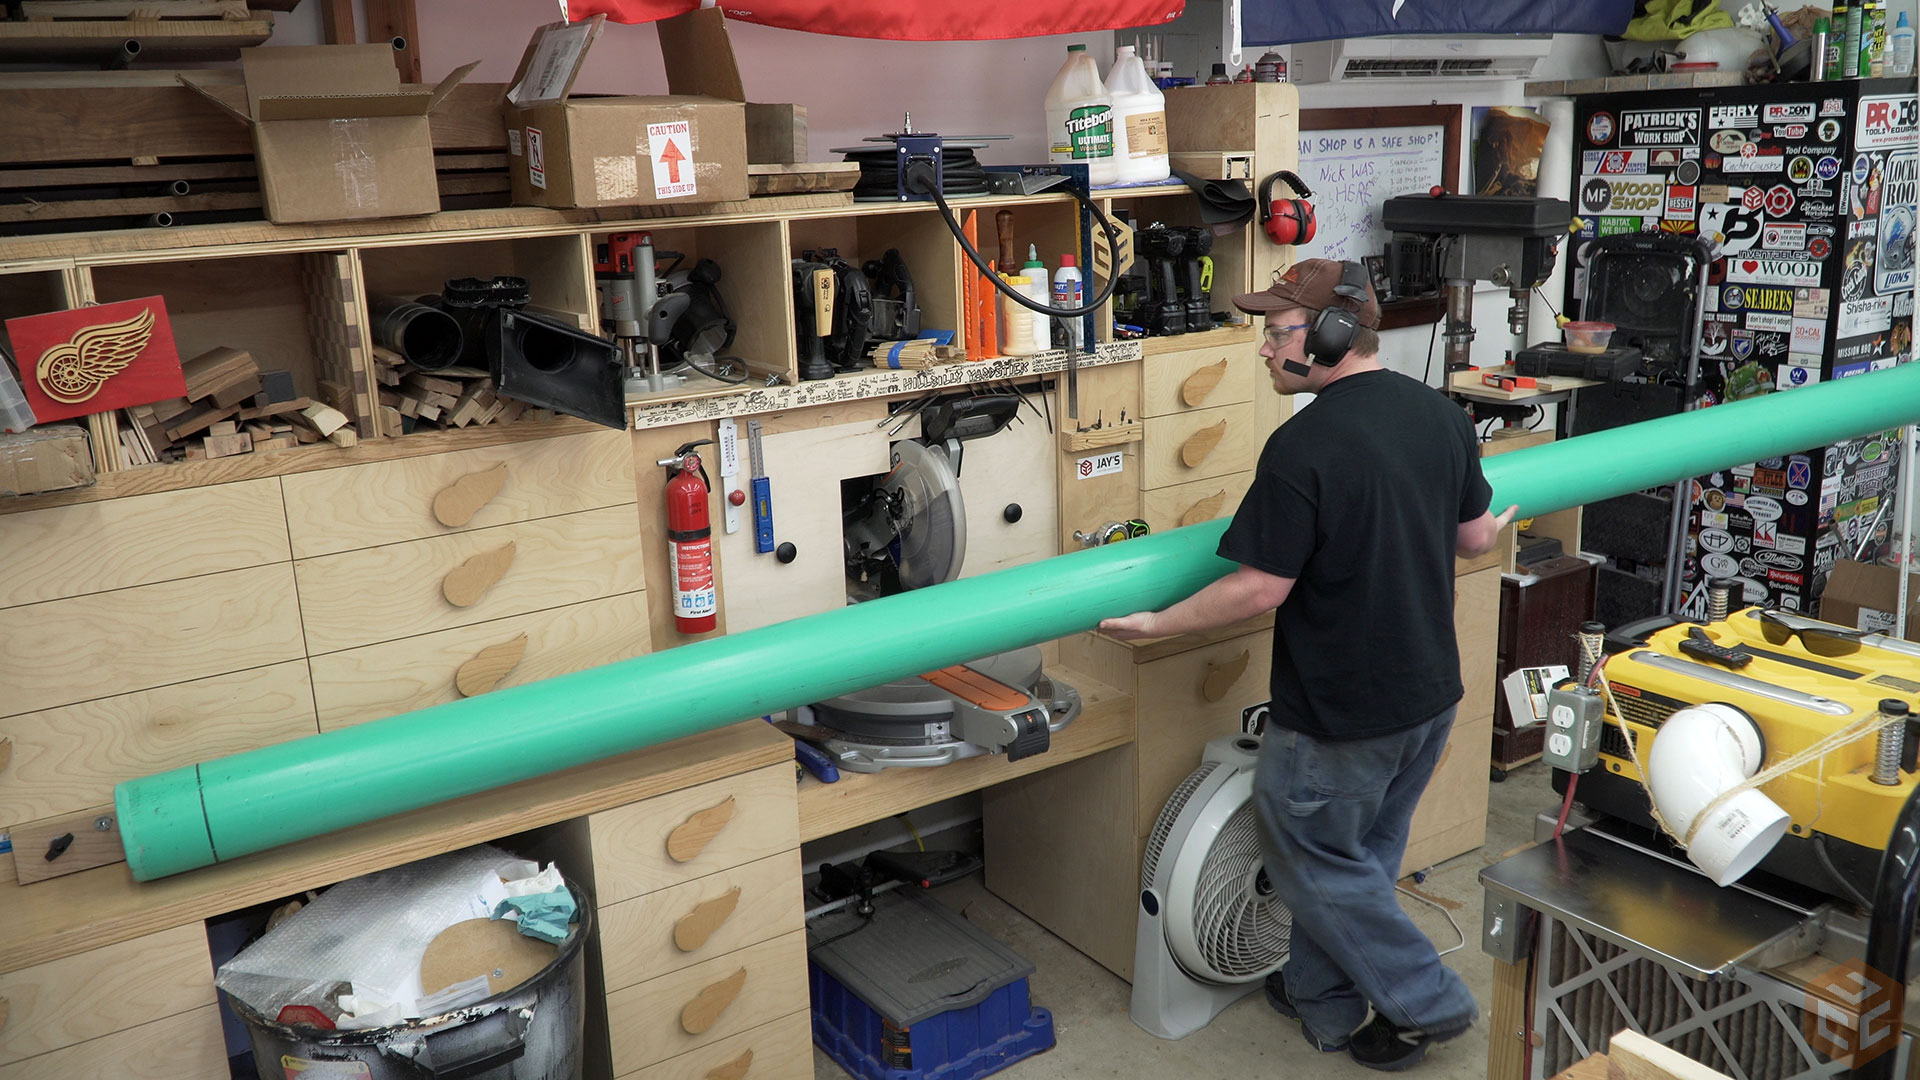 Dust Collection Duct : Dust collection piping and testing jays custom creations